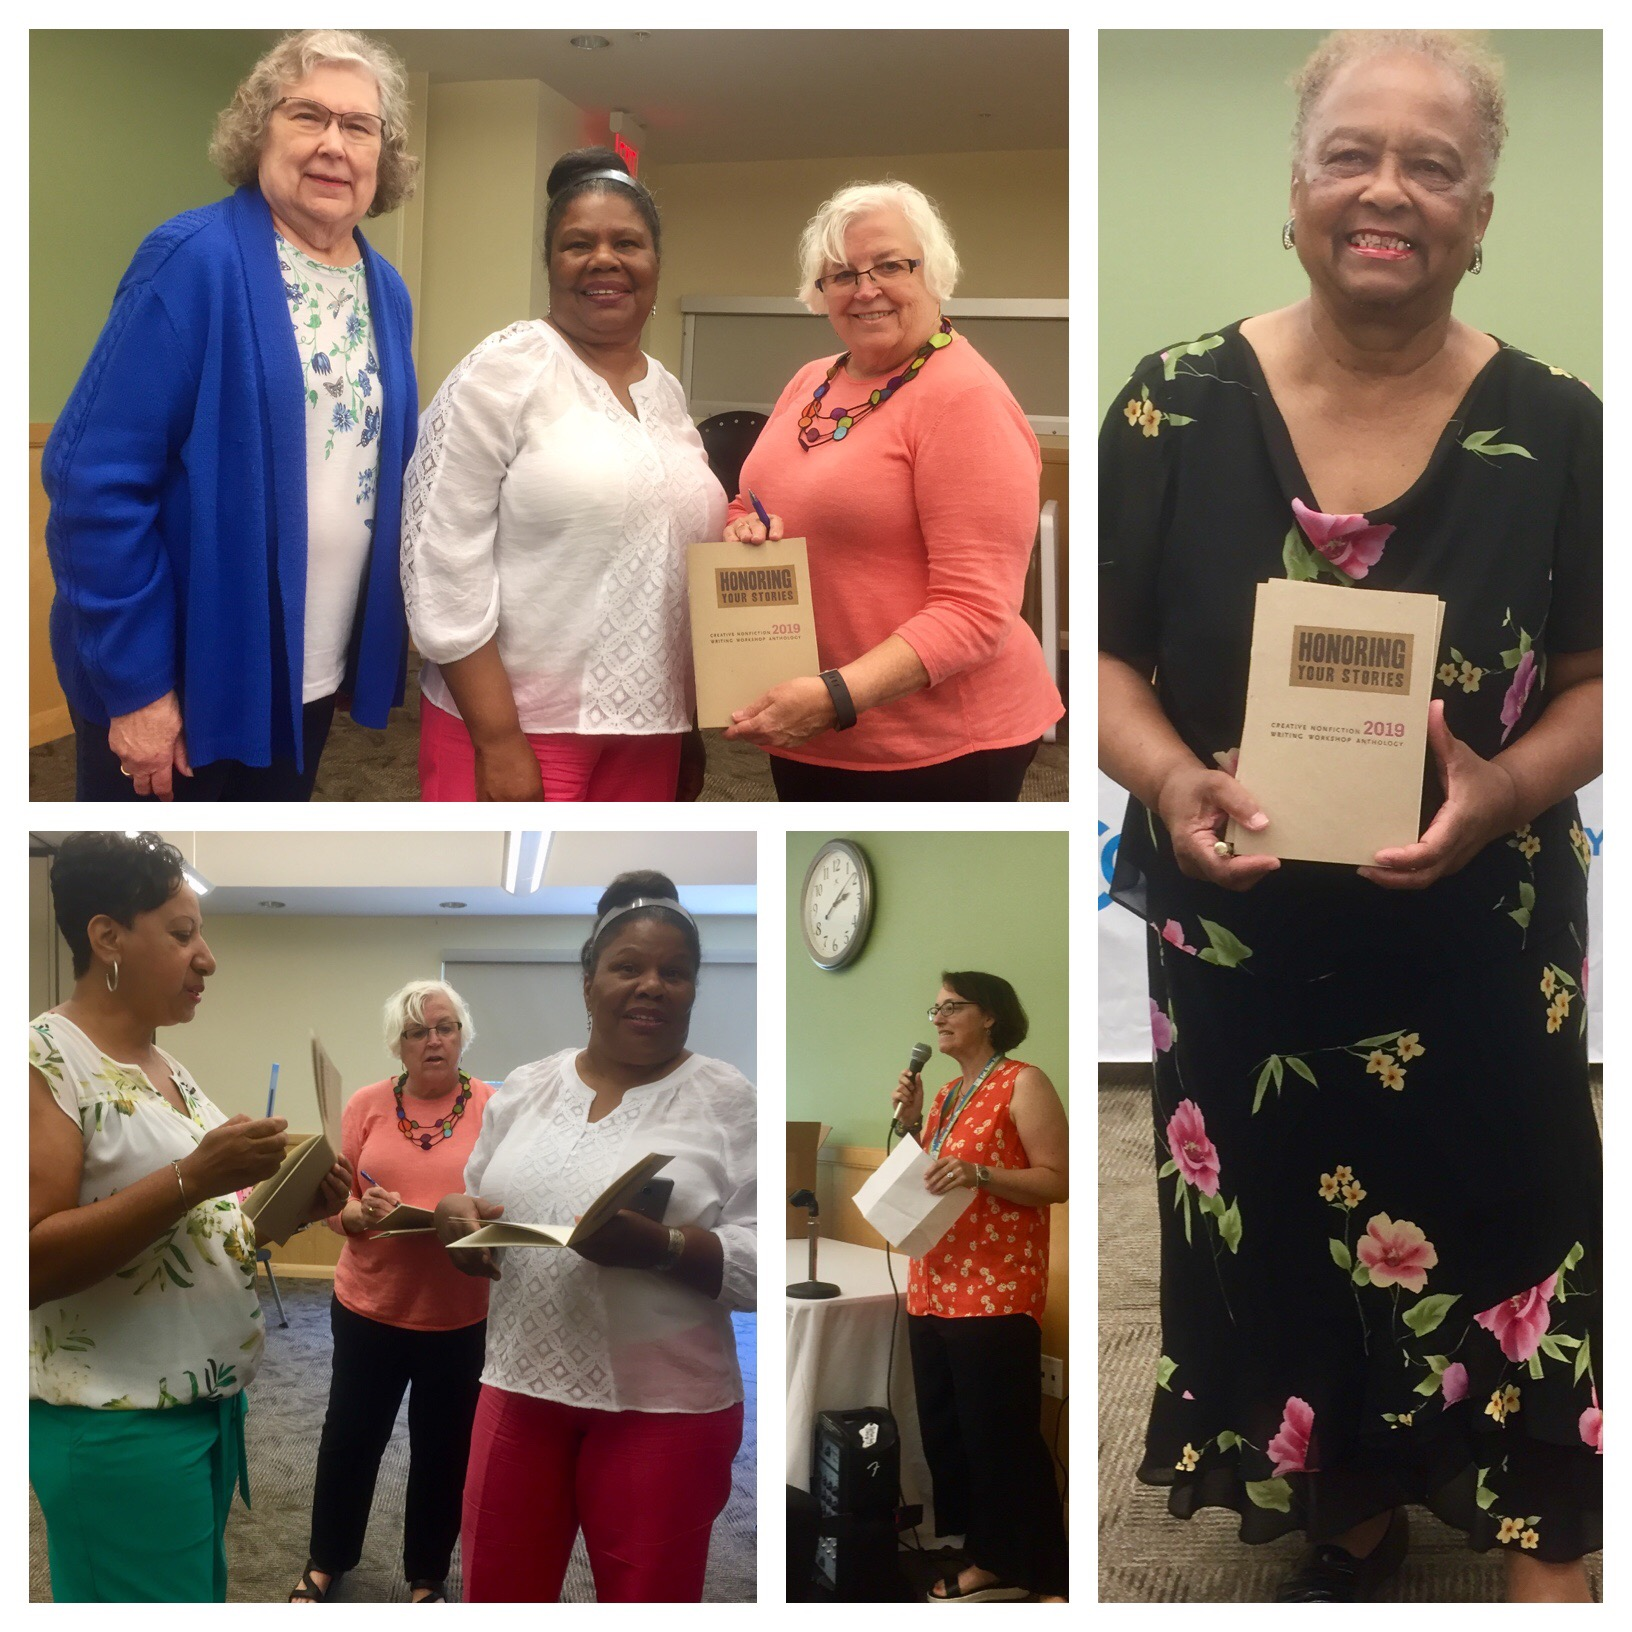 A selection of photos from the Anthology Celebration - Clockwise from top left: featured writers Marilyn Christian, Liz McGuffey and Shirley Jackson show off the book; featured writer Mary White with her copy; Humanities & Adult Program Coordinator Jennifer Levine says a few words; DCL Director Tammy Baggett gets a signed copy from writers Liz McGuffey and Shirley Jackson.